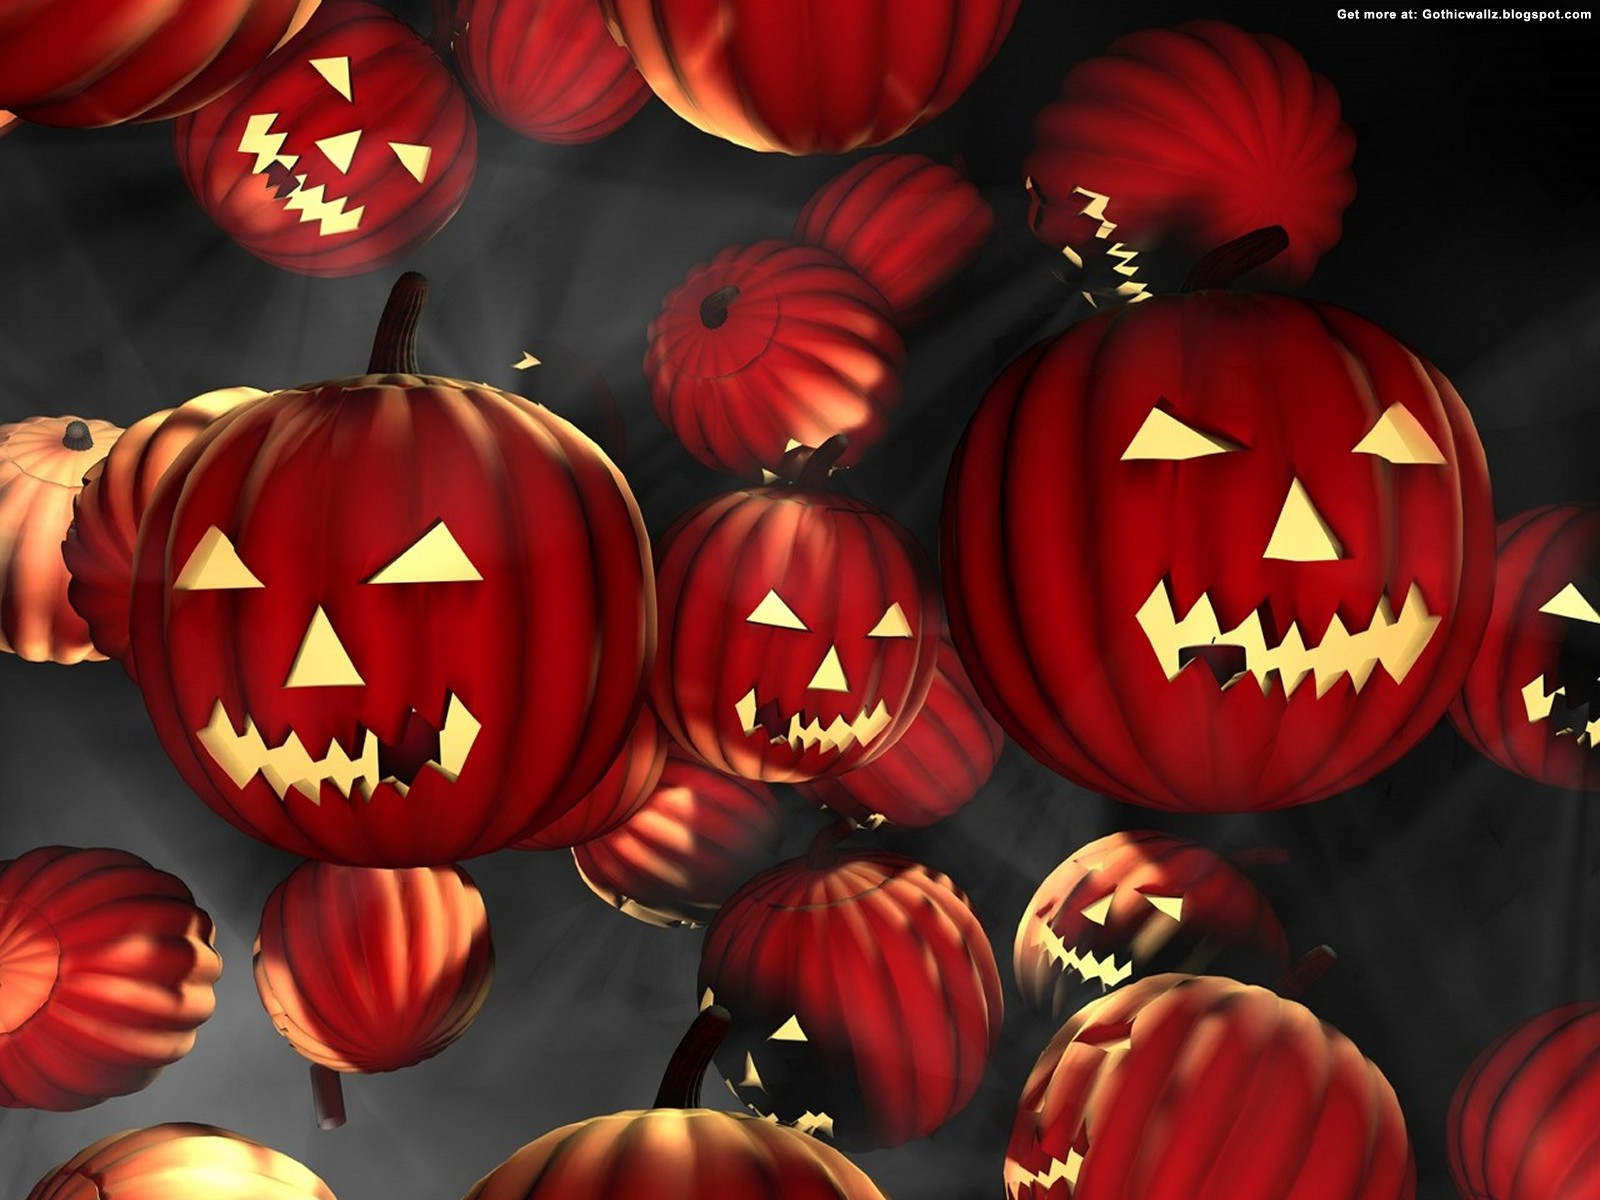 red halloween pumpkins | Gothic Wallpaper Download